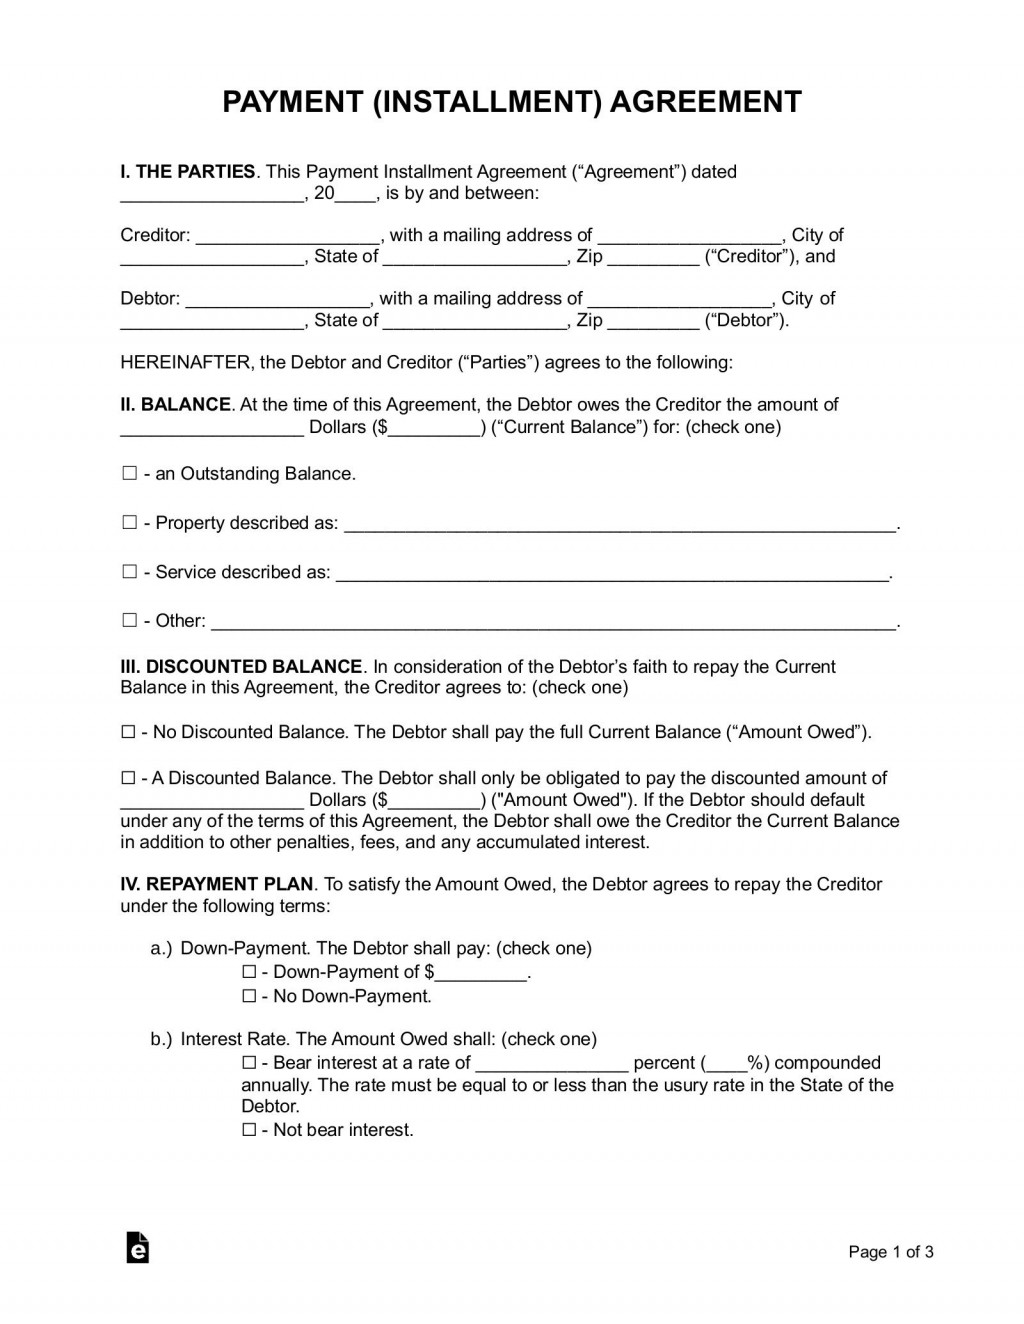 008 Archaicawful Installment Payment Contract Template High Definition  Car Agreement Simple MonthlyLarge